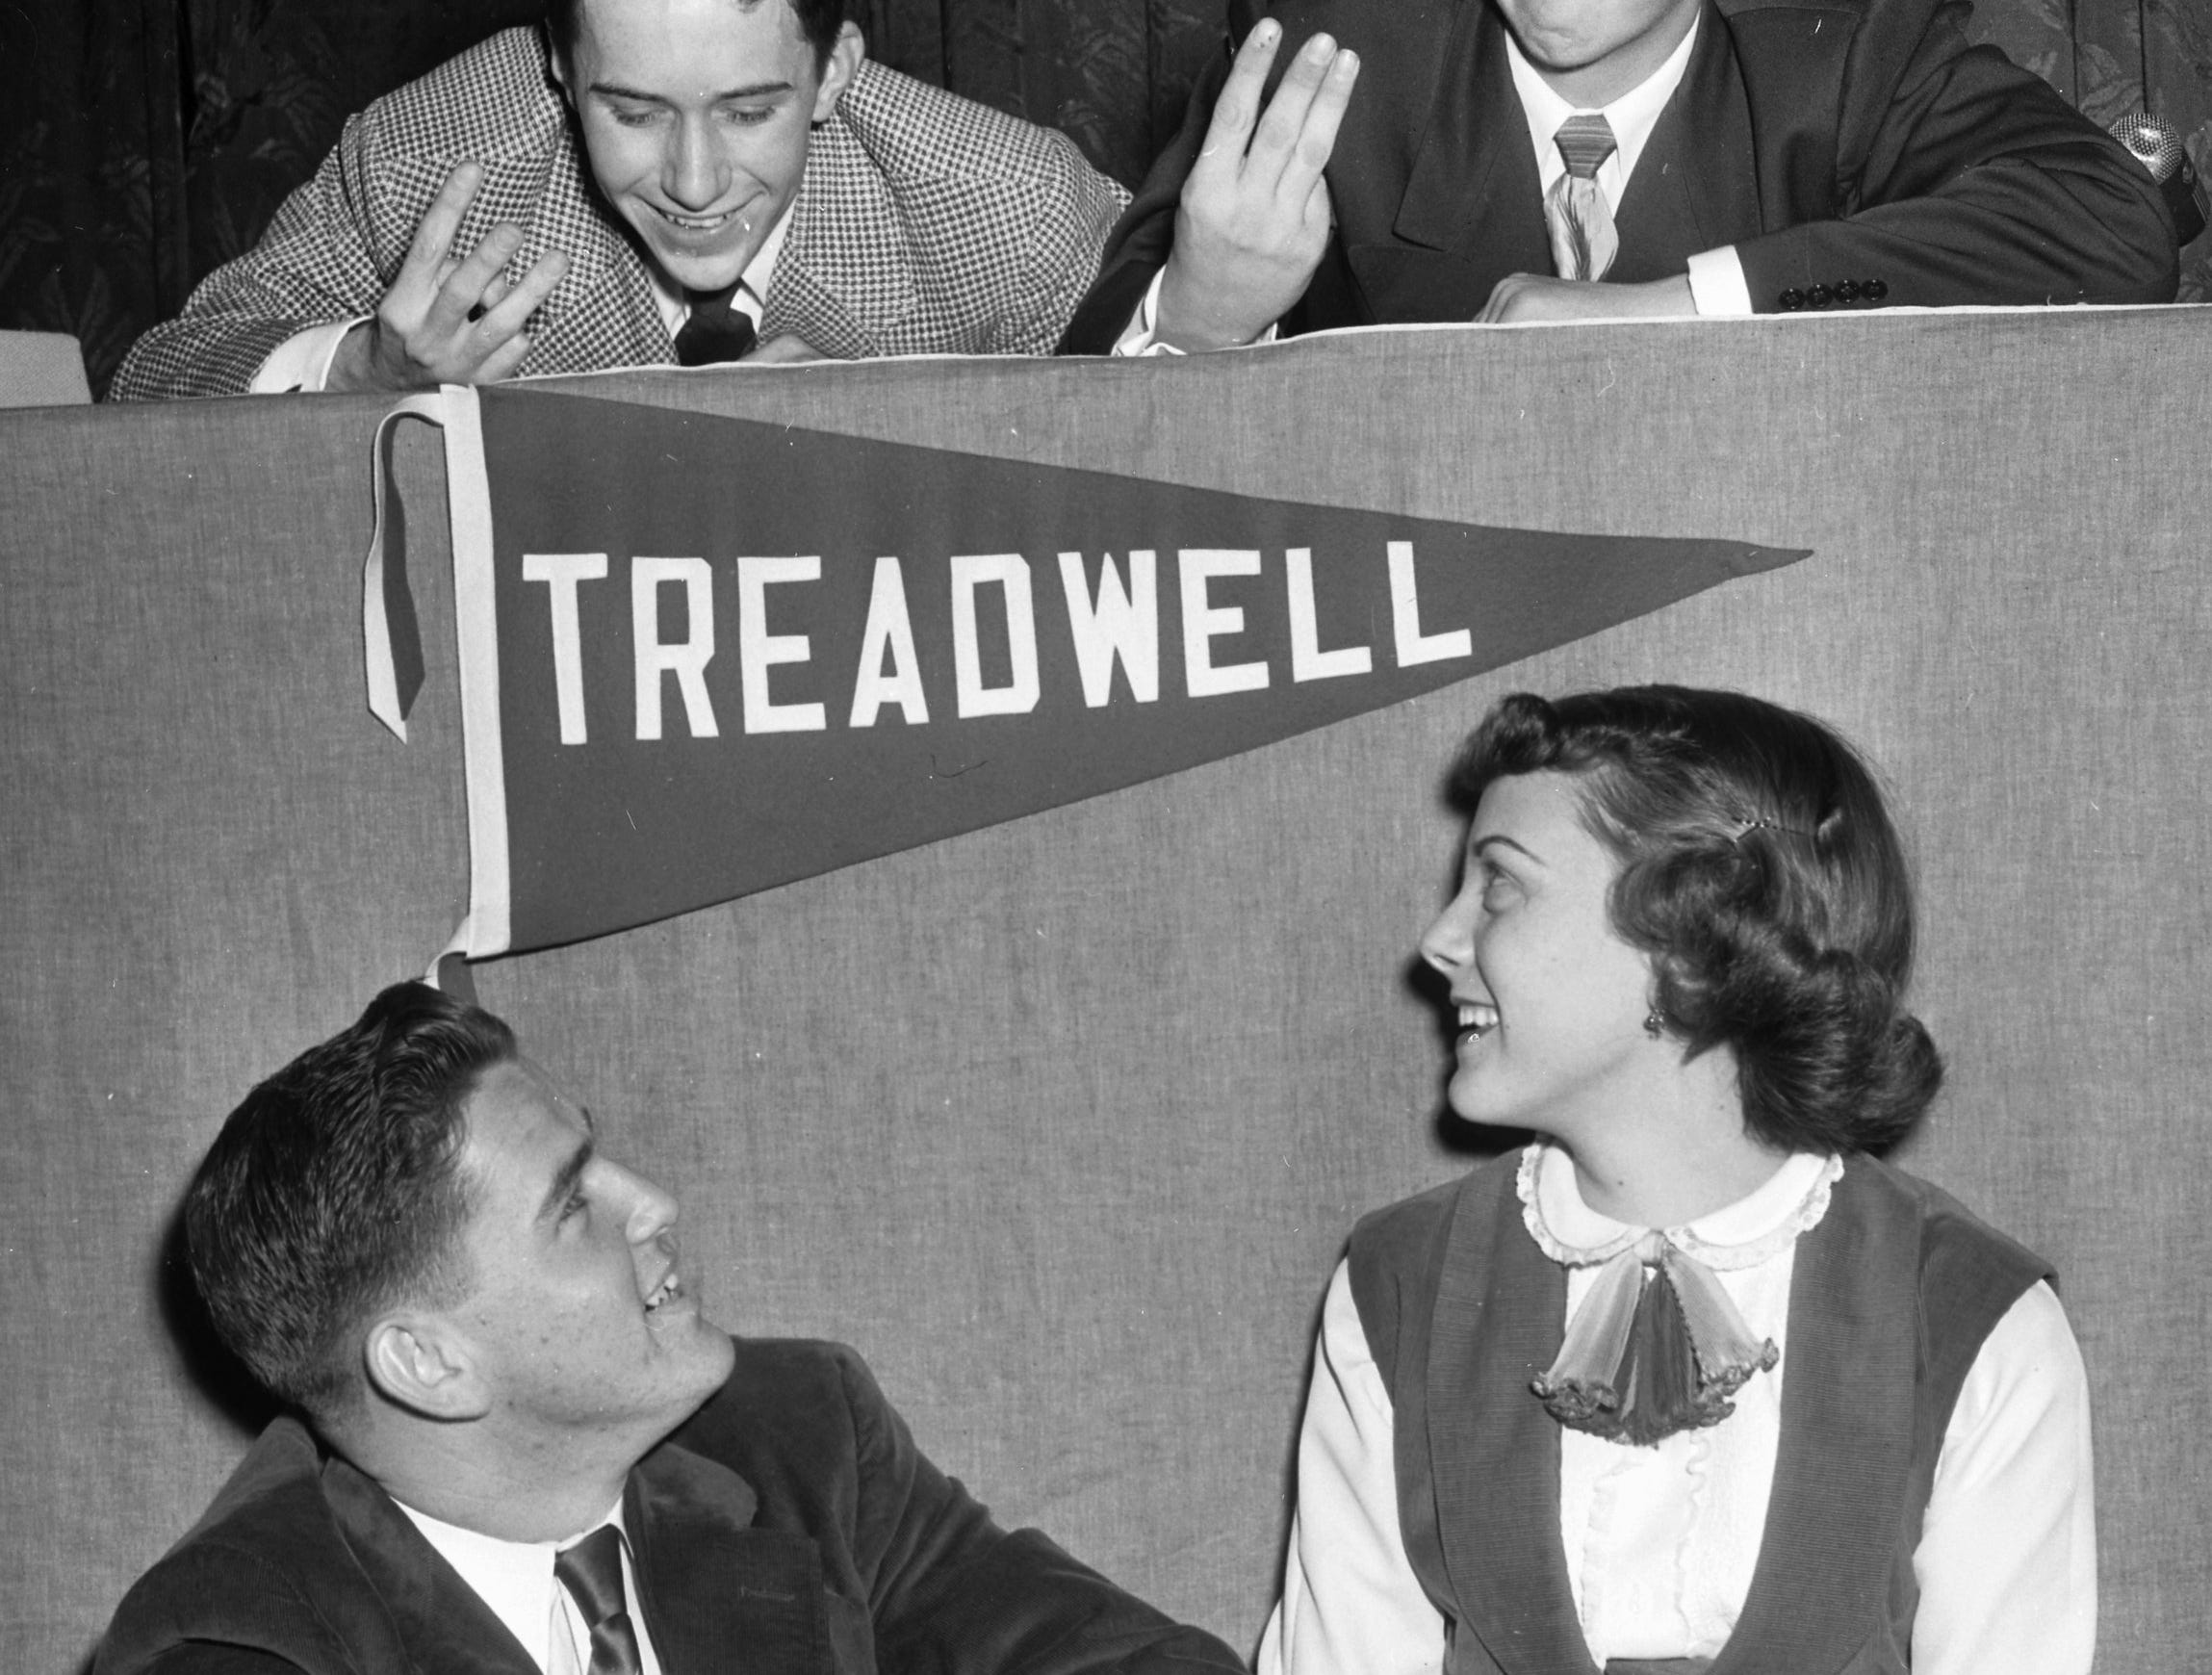 Treadwell High School made it three in a row on the Quiz 'Em on the Air Contest on 10 Feb 1951 as Tommy Graham (Top Left) and Joe Spann (Top Right), members of the team, indicate with upraised fingers.  Also on the team are Billy Caldbeck (Lower Left) and Mary Anne Sellers.